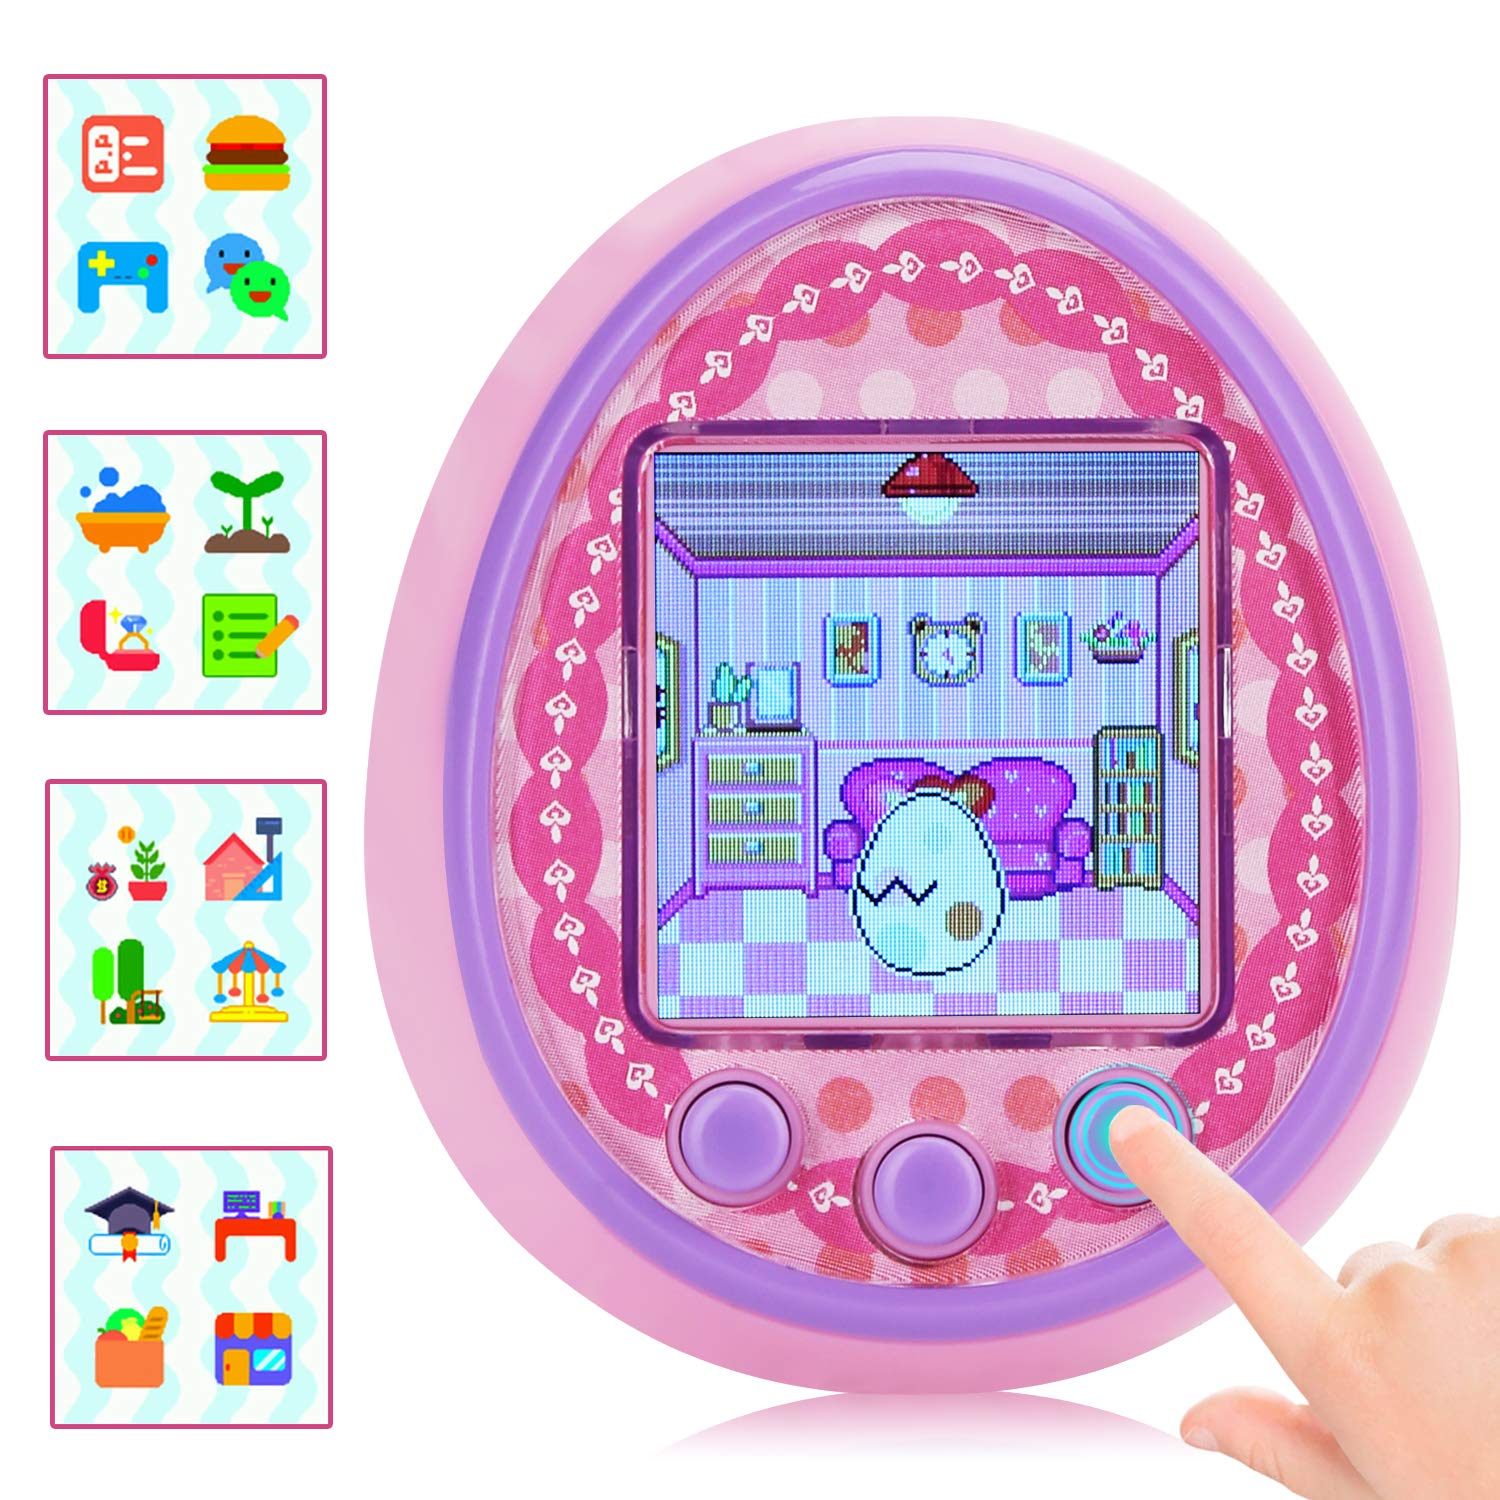 DUIWOIM Virtual Pet Electronic Handheld Pet Game Machine Kids Educational Toy HD Color Screen New Version 8 Characters Birthaday Gift for Girls Best Partner for Kids Age Over 6 Years(Pink) by DUIWOIM (Image #2)